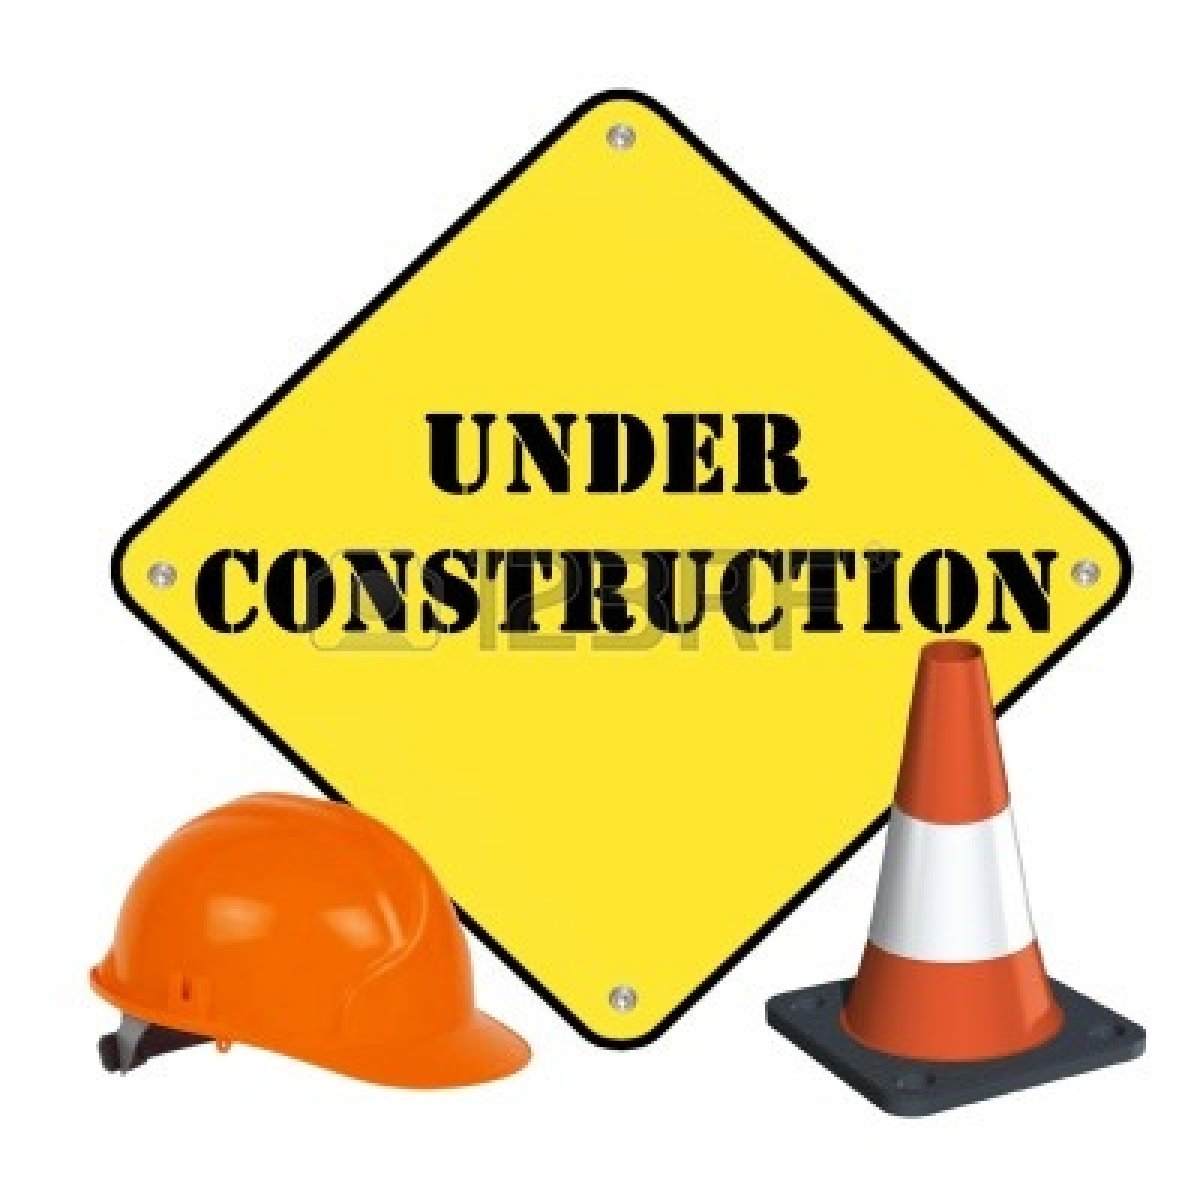 Under Construction Clipart | Clipart Panda - Free Clipart Images